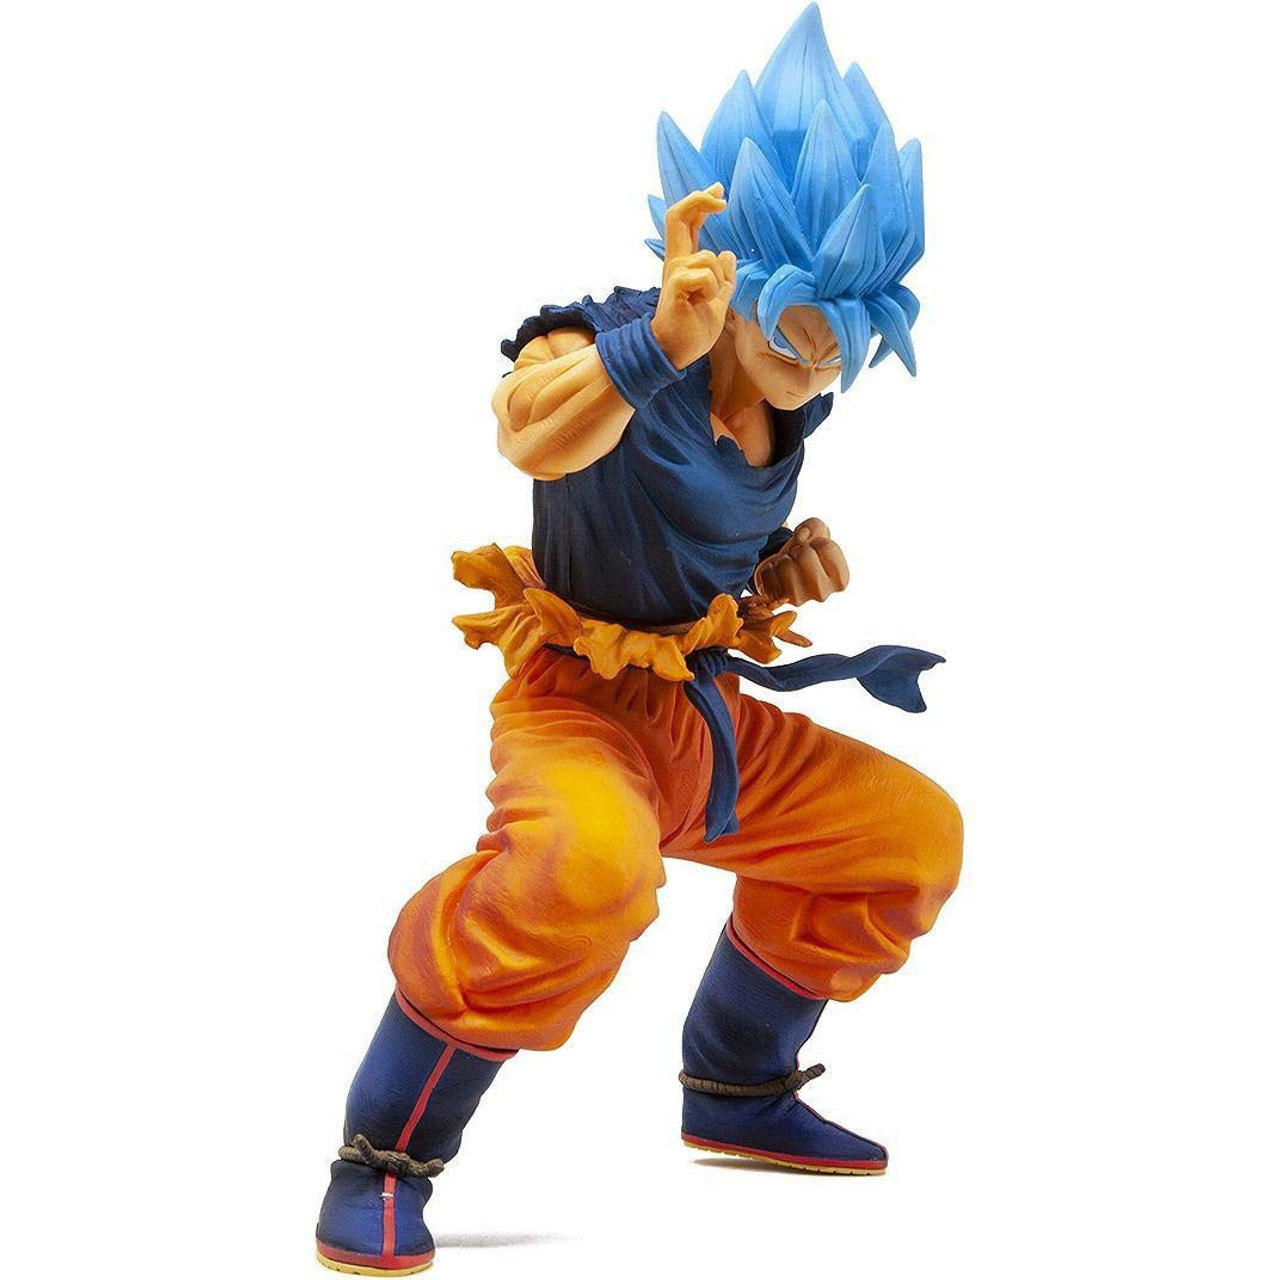 The 20th Film Banpresto Japan Authentic New Dragon Ball Son Goku Figure Broly